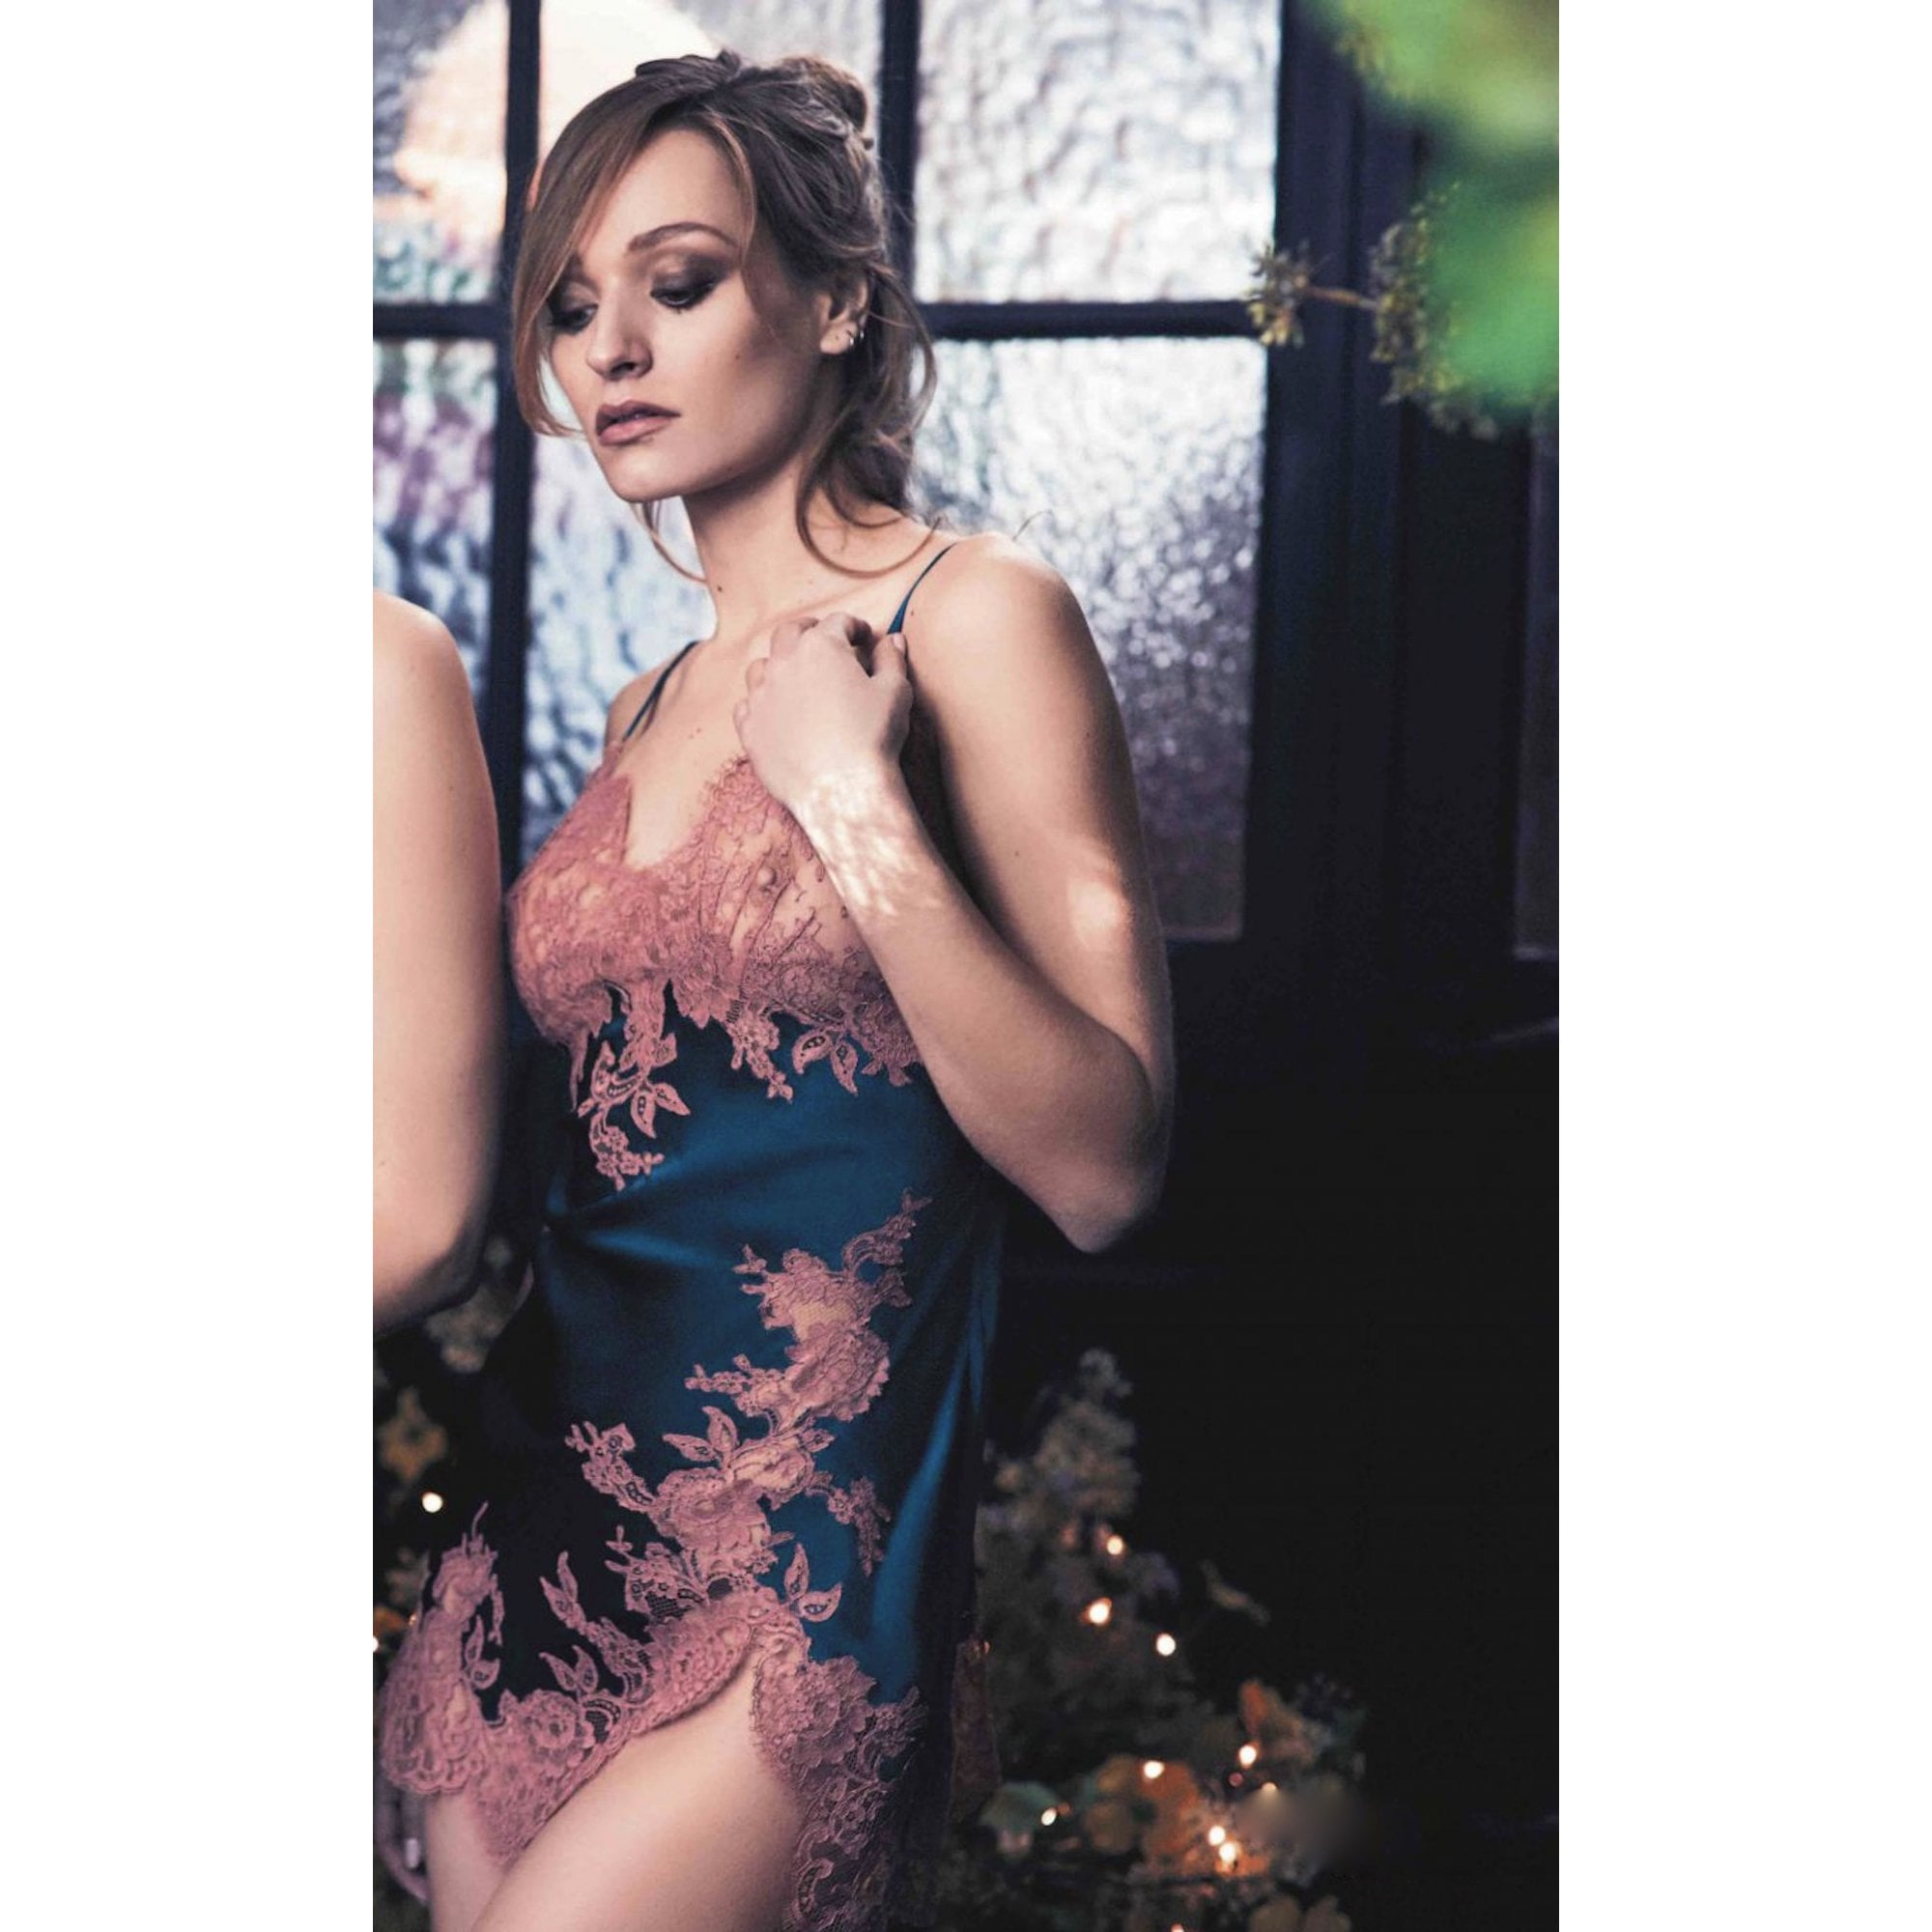 91e3aabbb0c71 Egerie Silk   Lace Chemise - For Her... from The Luxe Company UK